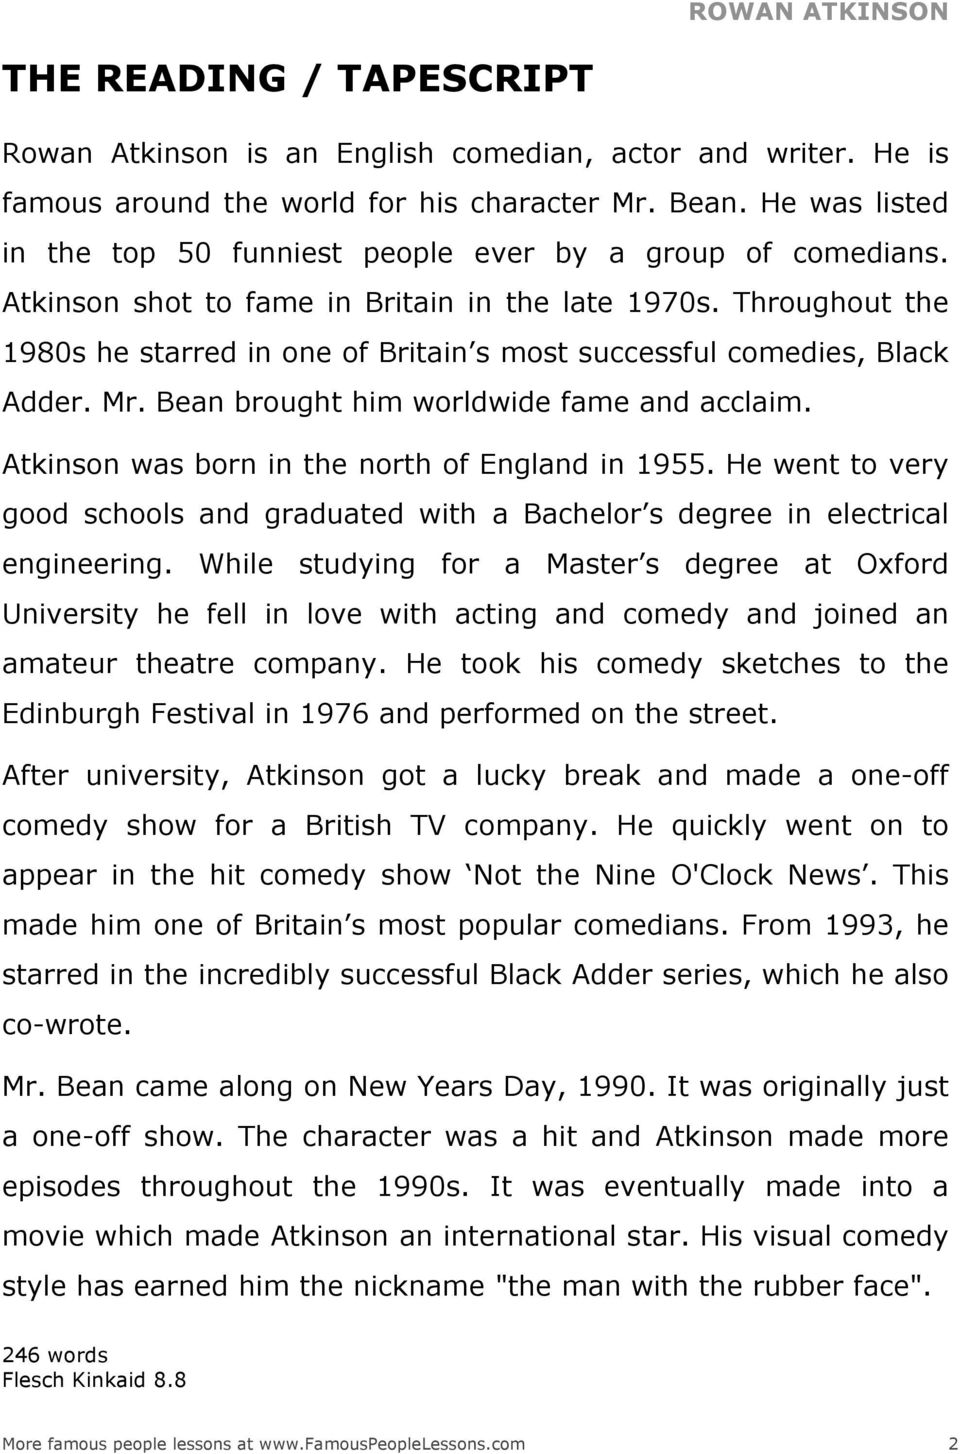 Throughout the 1980s he starred in one of Britain s most successful comedies, Black Adder. Mr. Bean brought him worldwide fame and acclaim. Atkinson was born in the north of England in 1955.